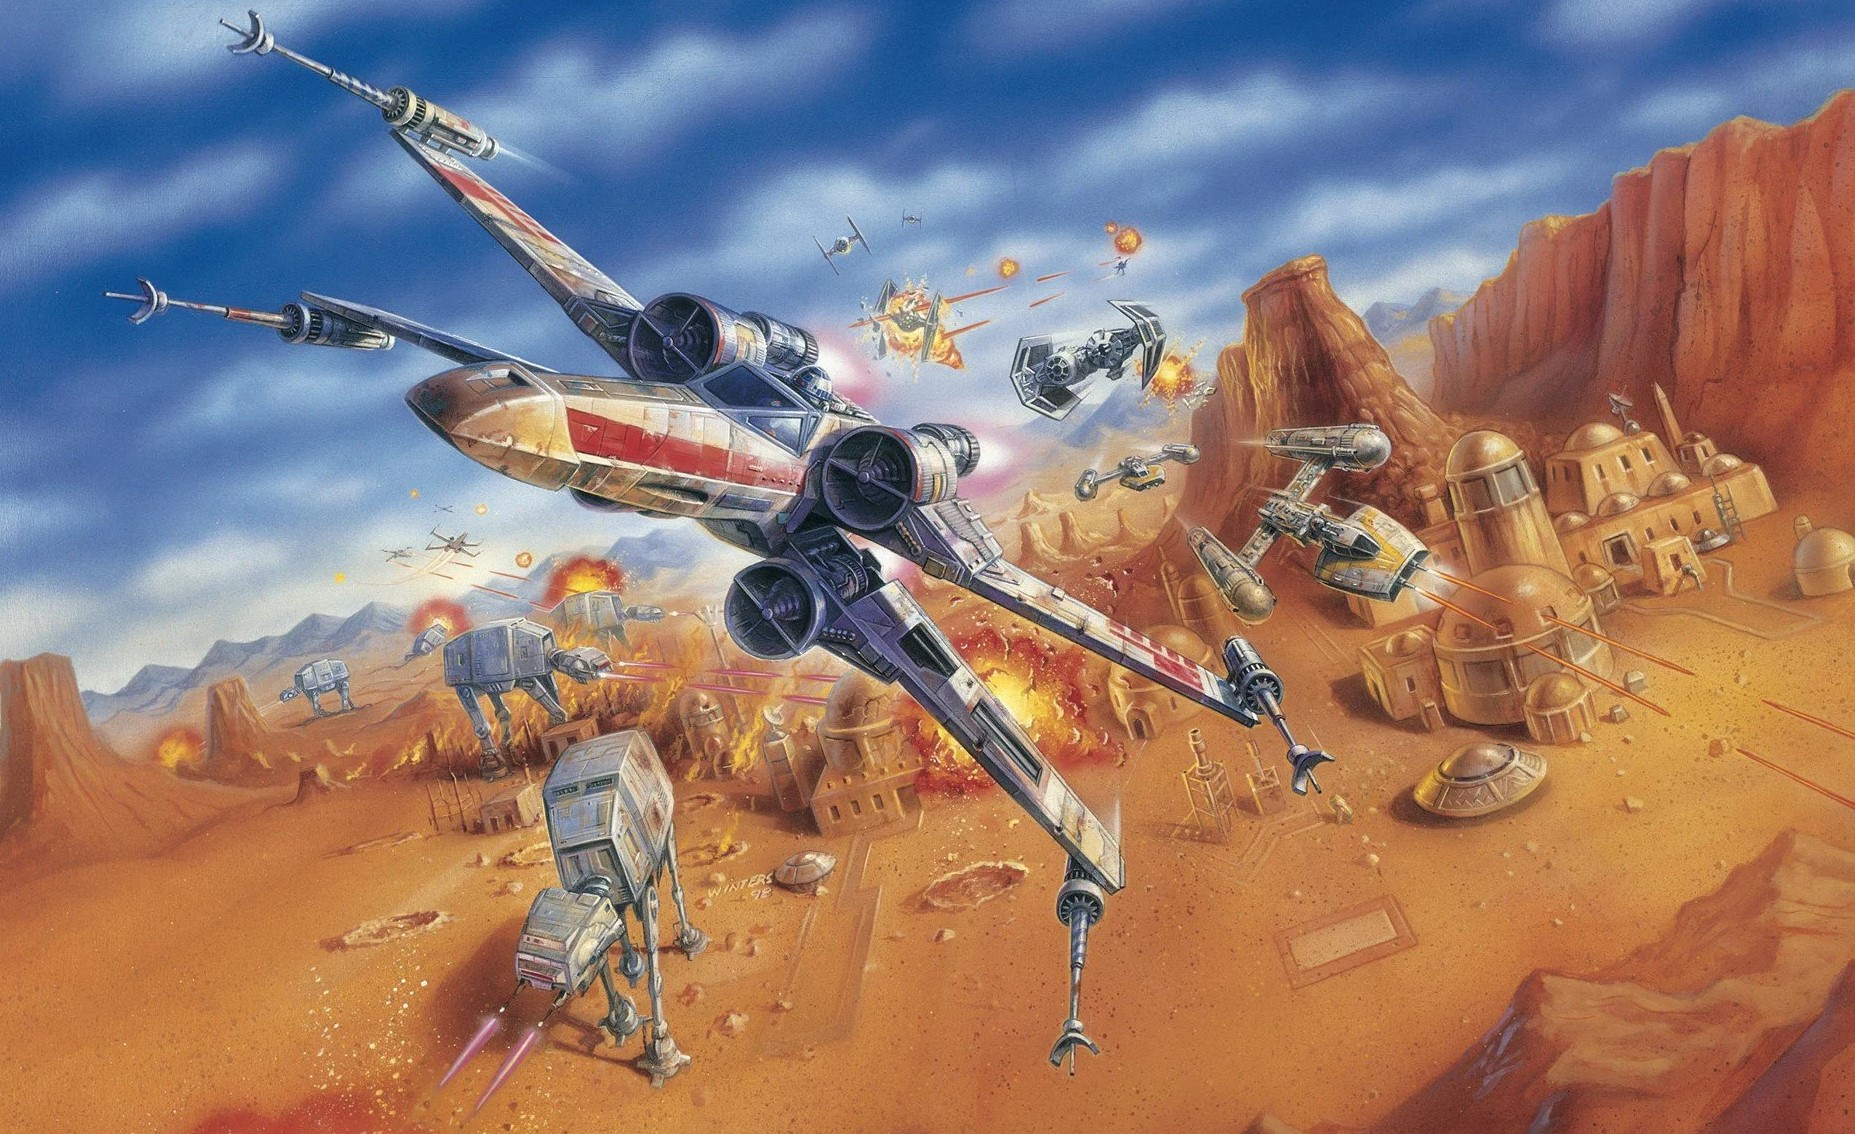 Star Wars: Rogue Squadron movie won't be based on the games but is influenced by them, director says